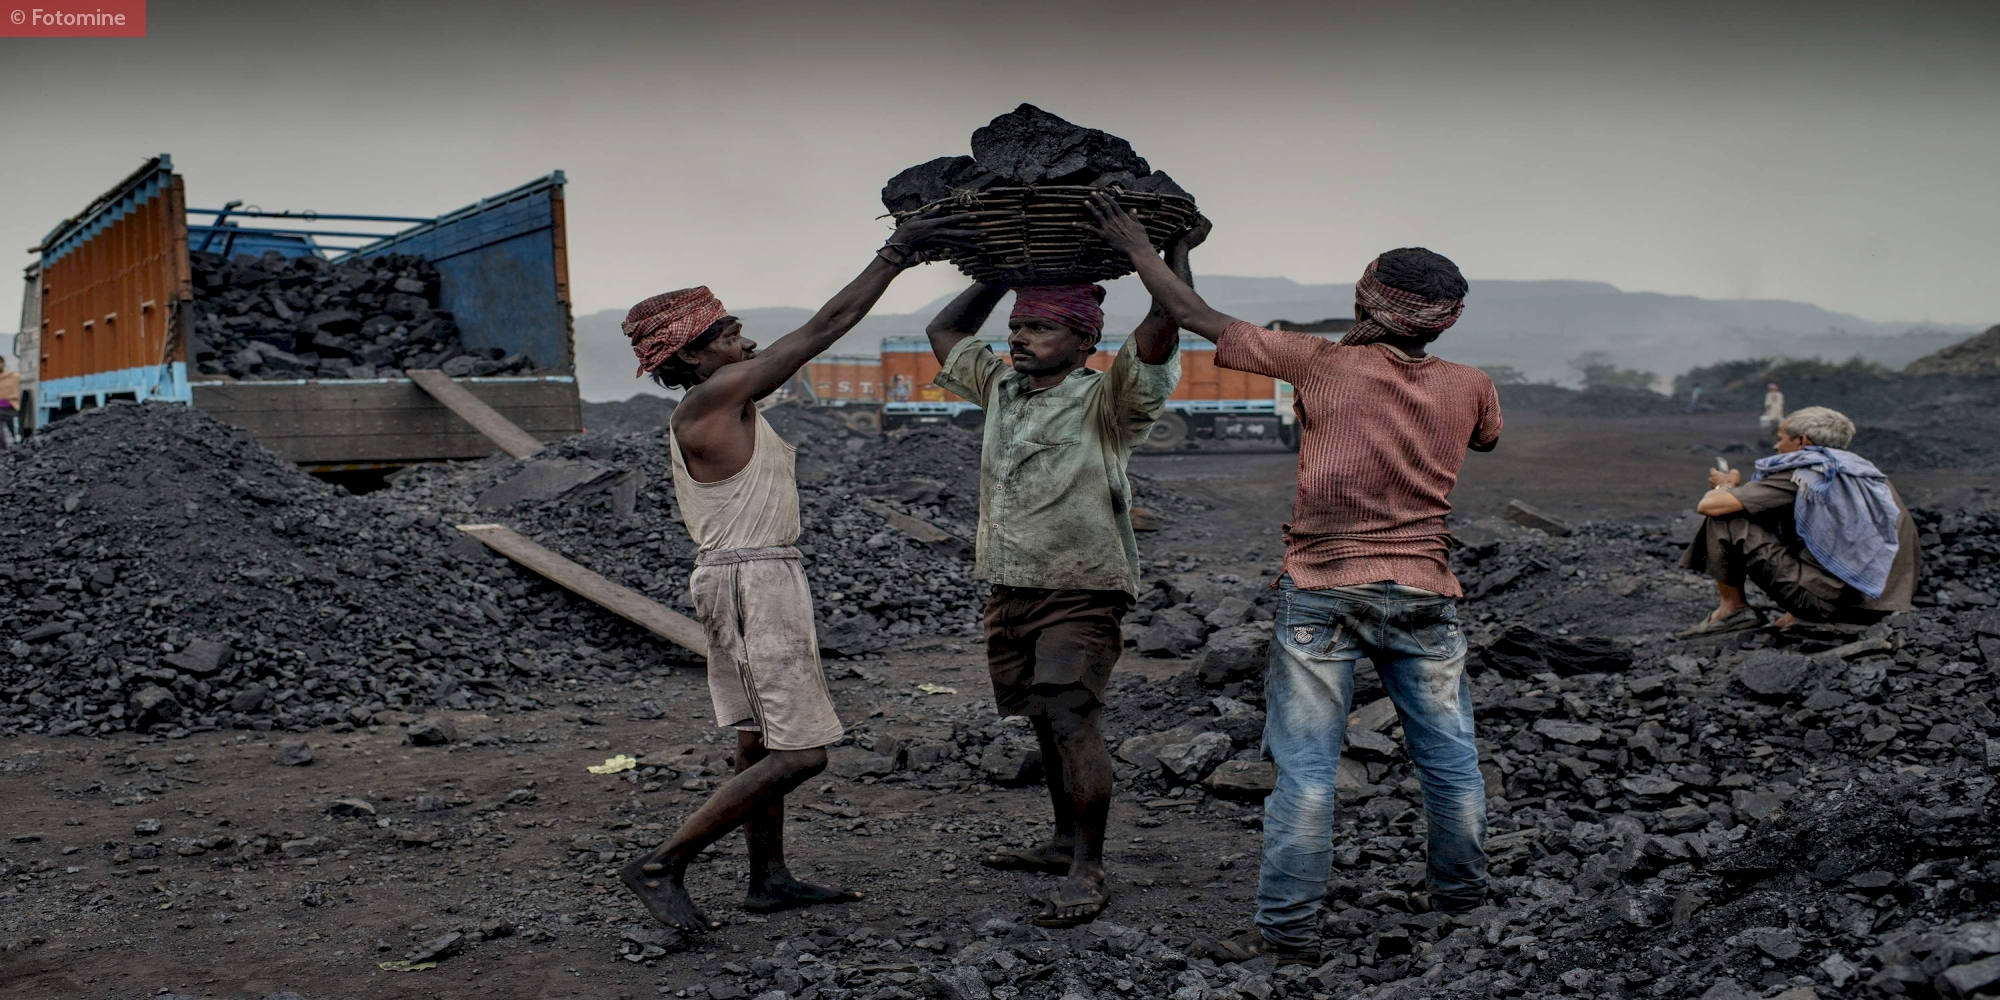 Workers Loading Coal at One of the Mines in East India